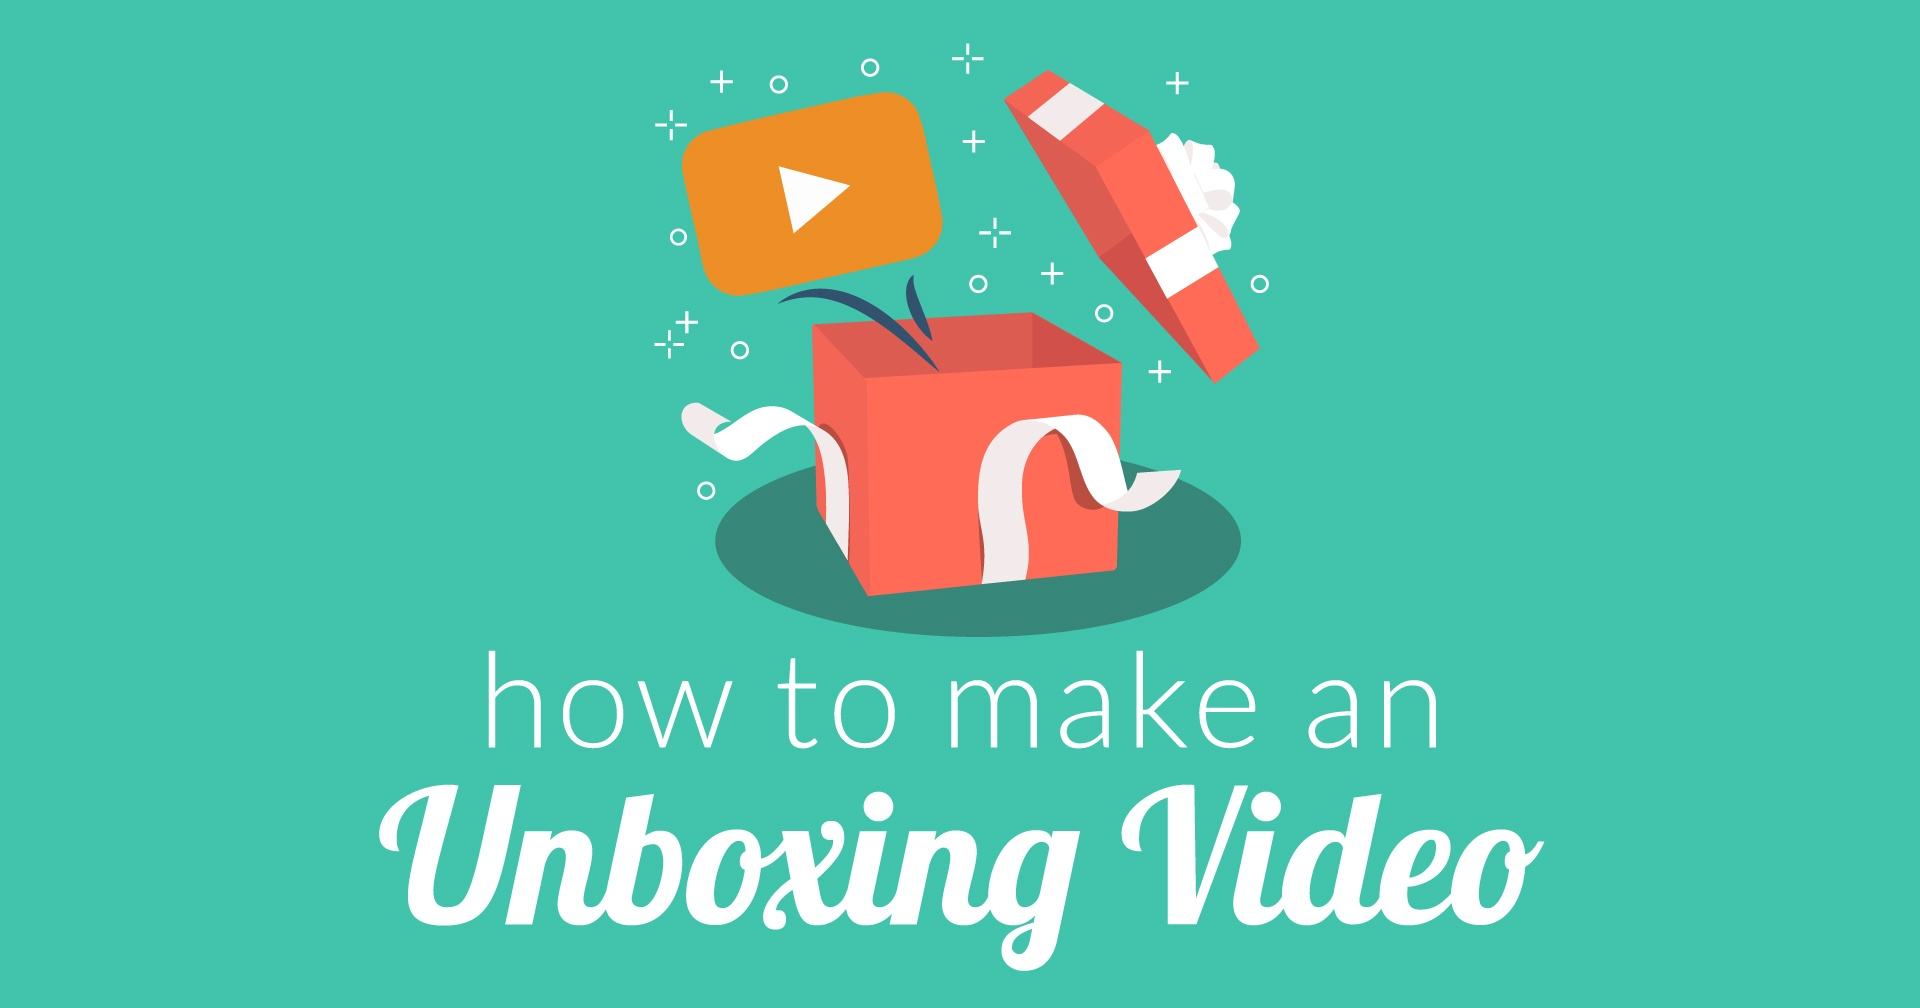 20161213   how to make an unboxing video   influencer marketing 1